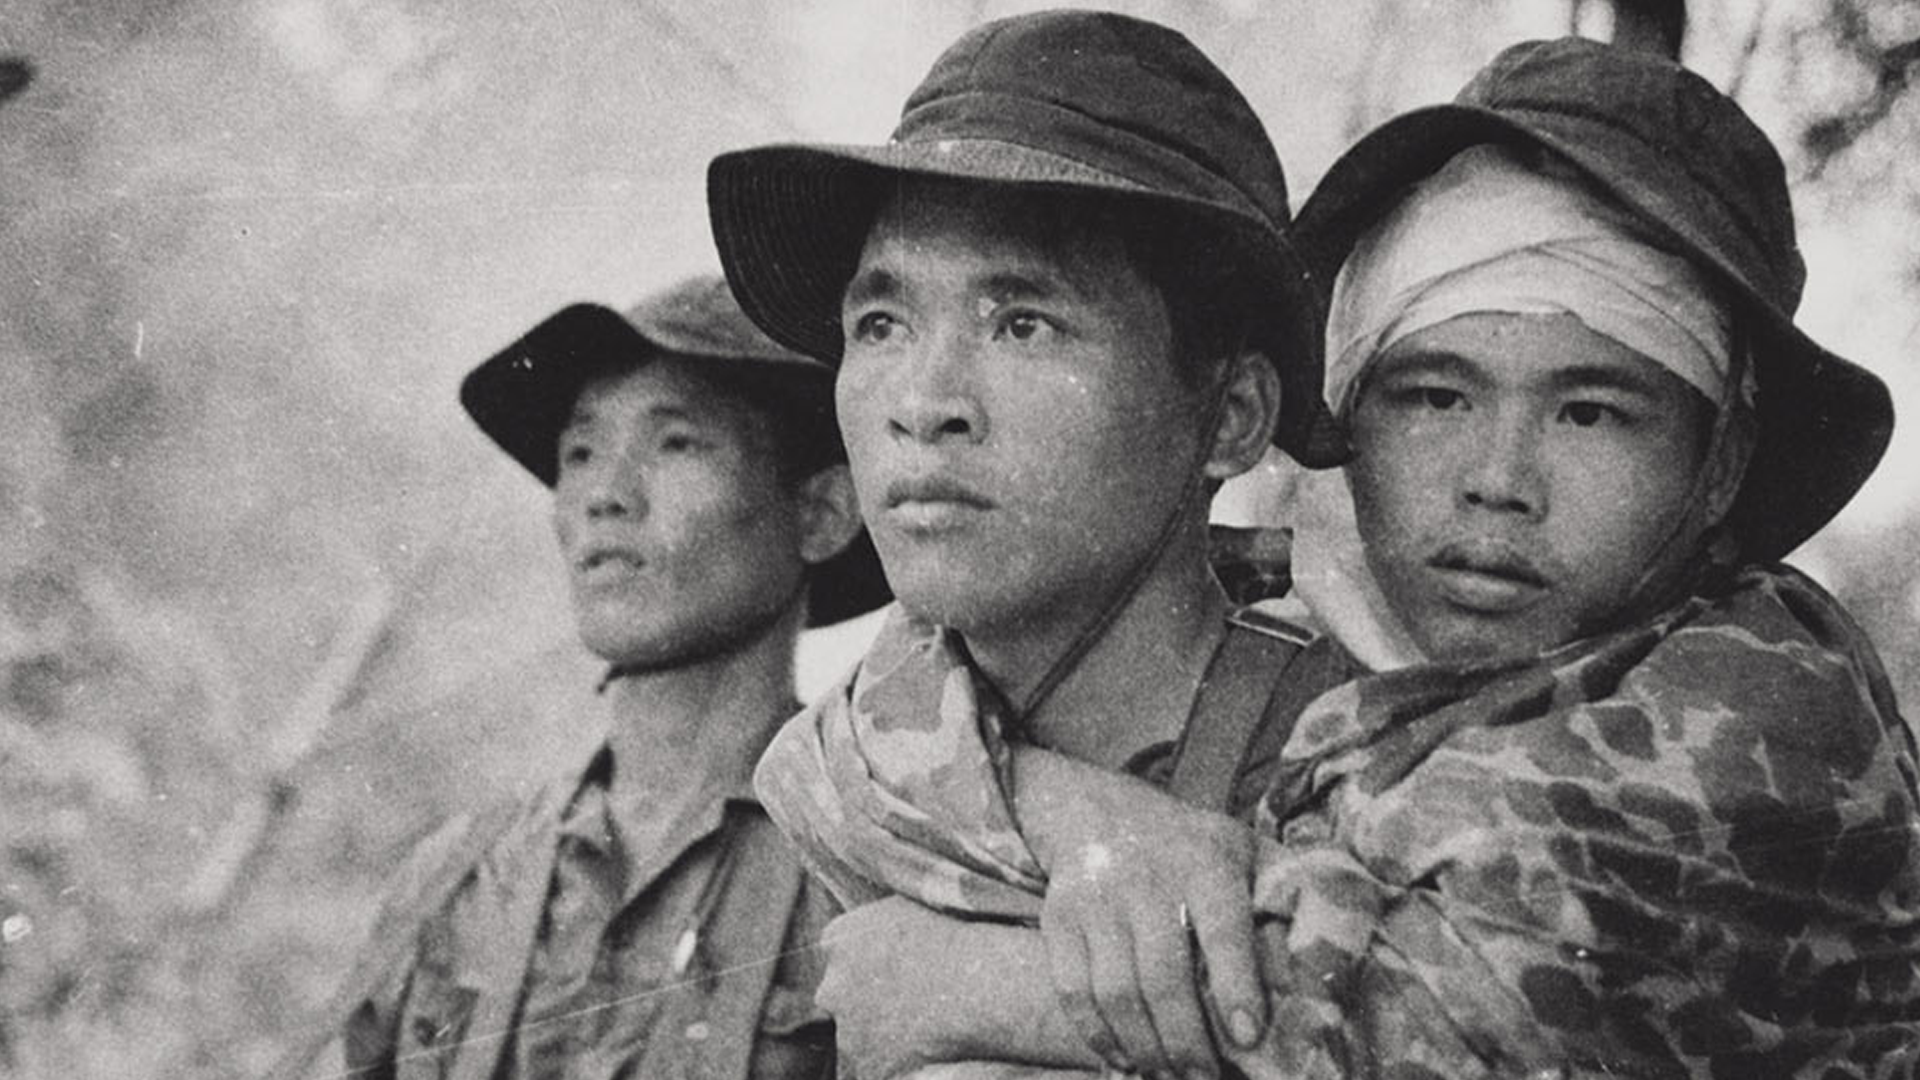 A photo of three young Vietnamese men in fatigues.